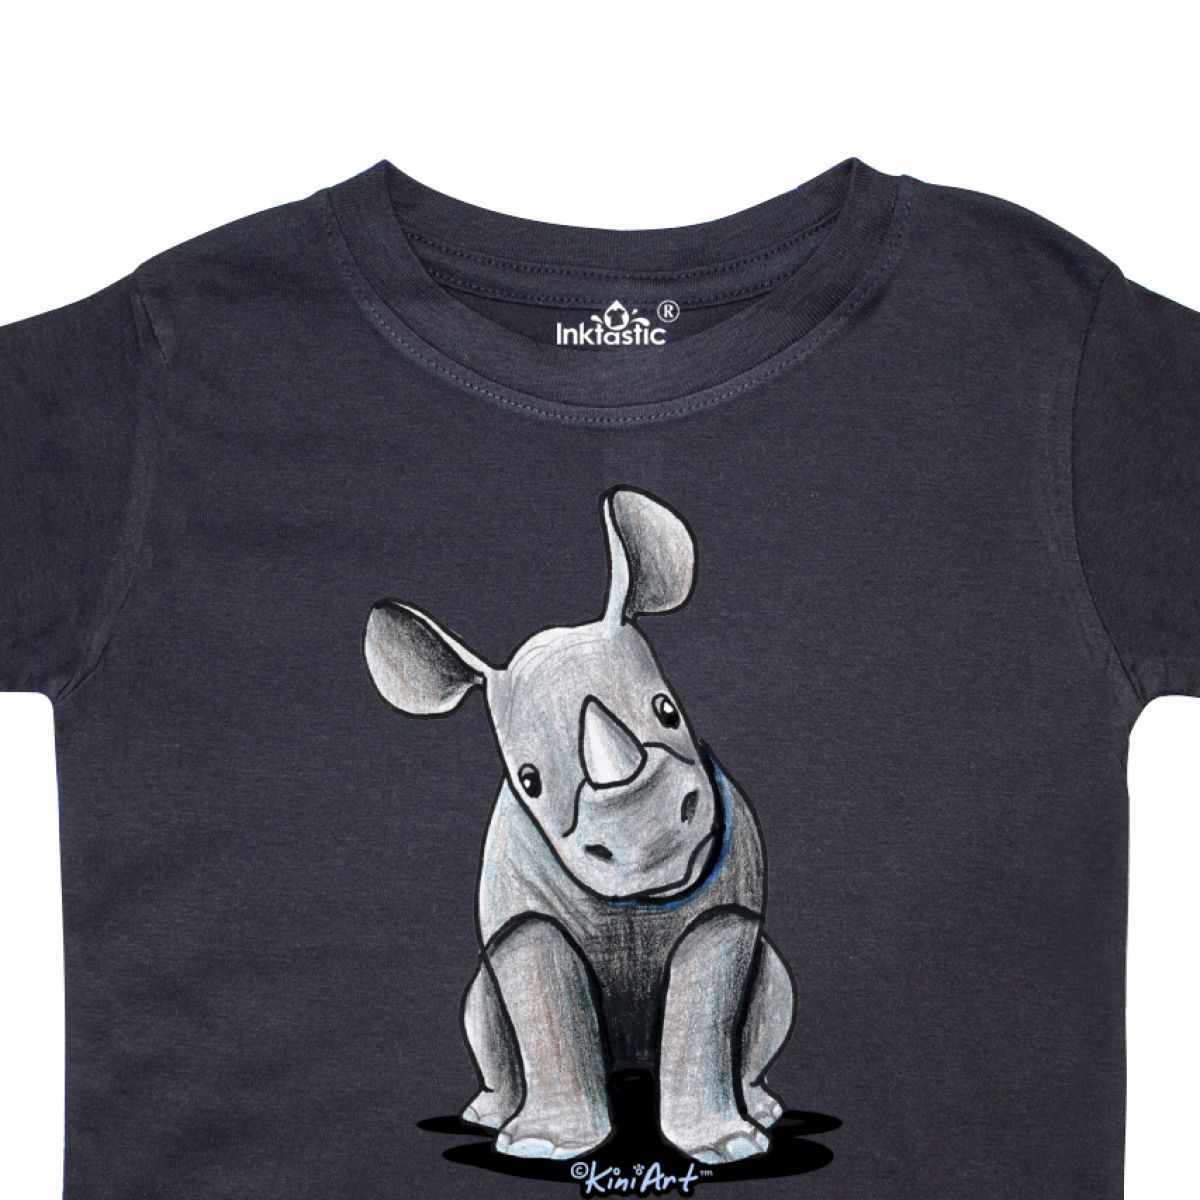 Inktastic-Curious-Rhinos-Toddler-T-Shirt-KiniArt-Rhino-Rhinoceros-Art-Cartoon thumbnail 6